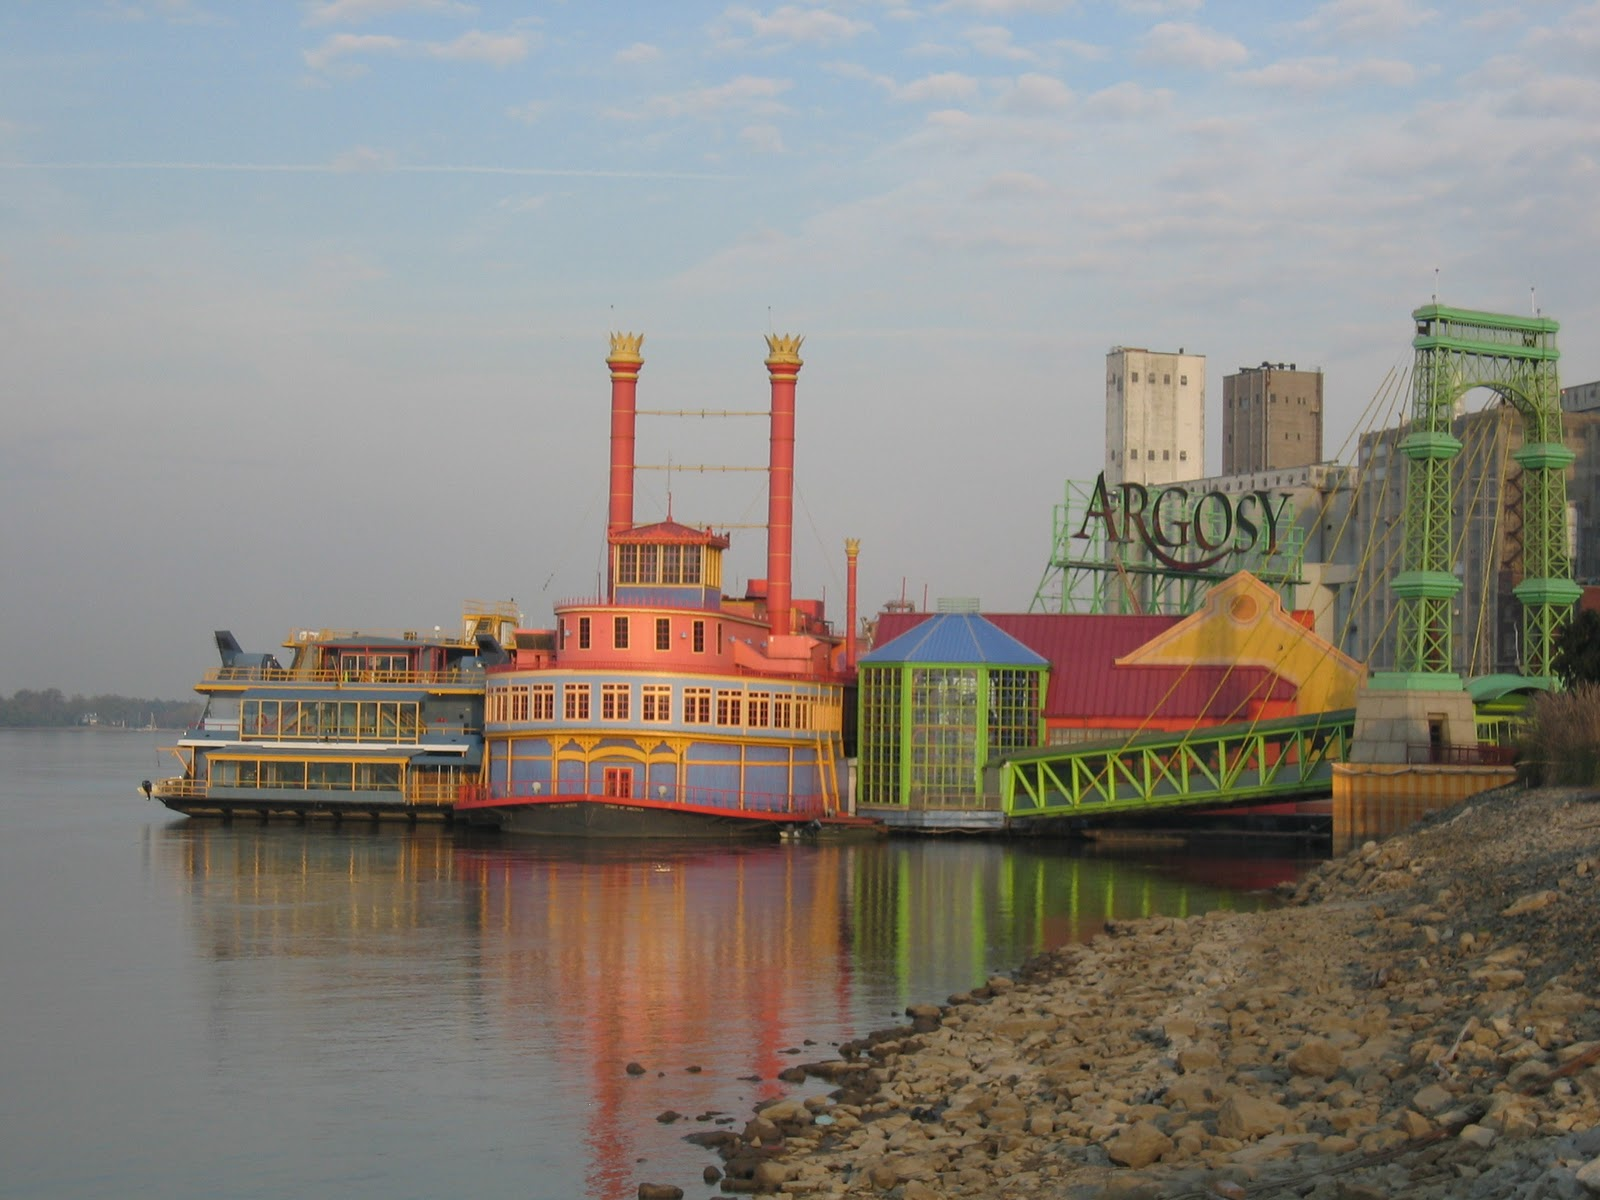 Gambling boats in illinois